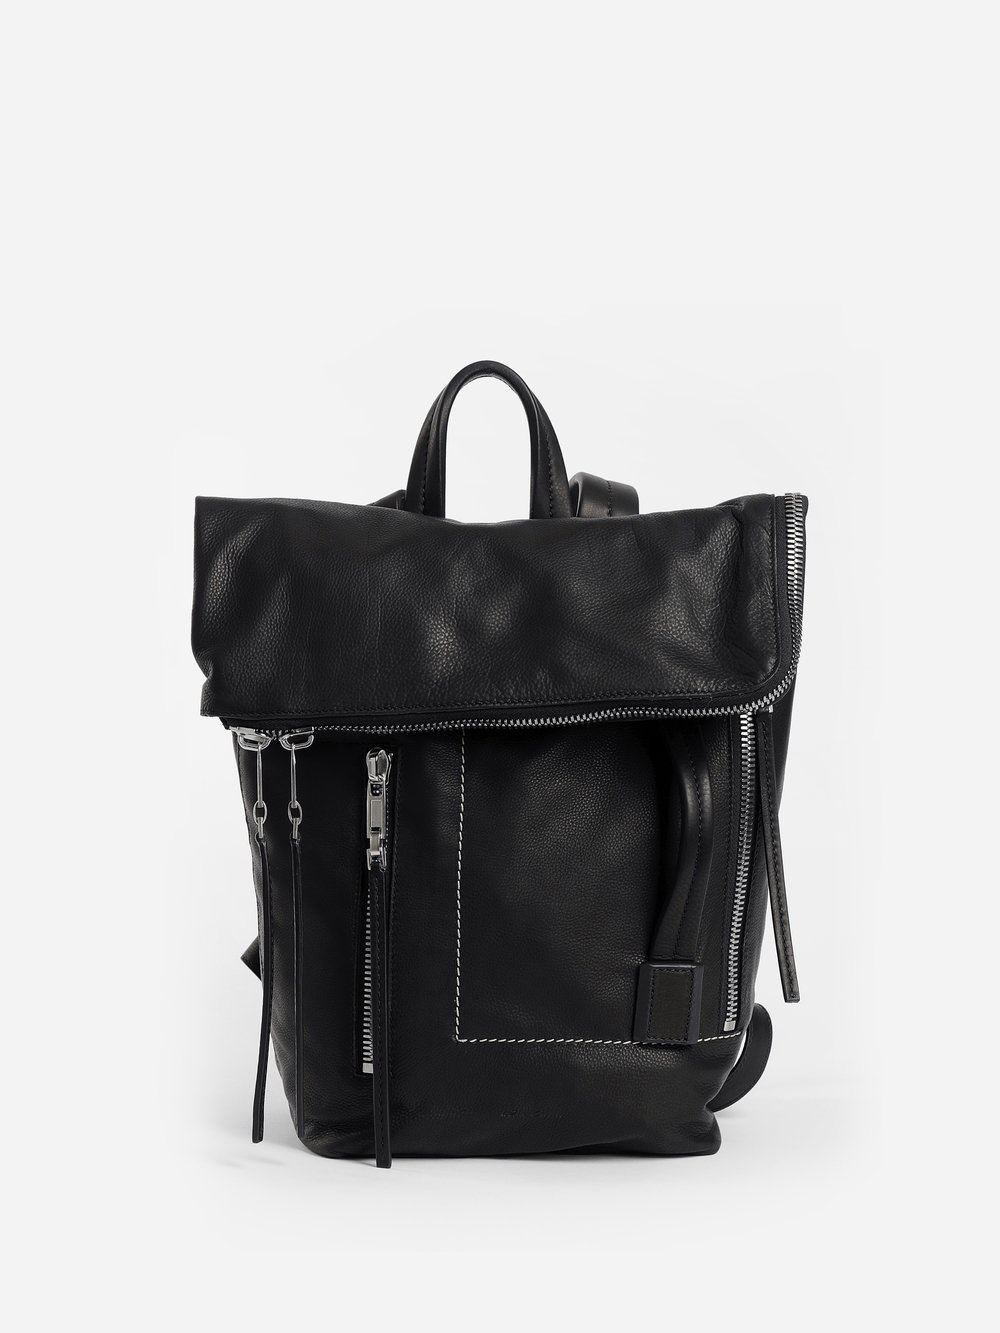 RICK OWENS BLACK SMALL DUFFLE BACKPACK